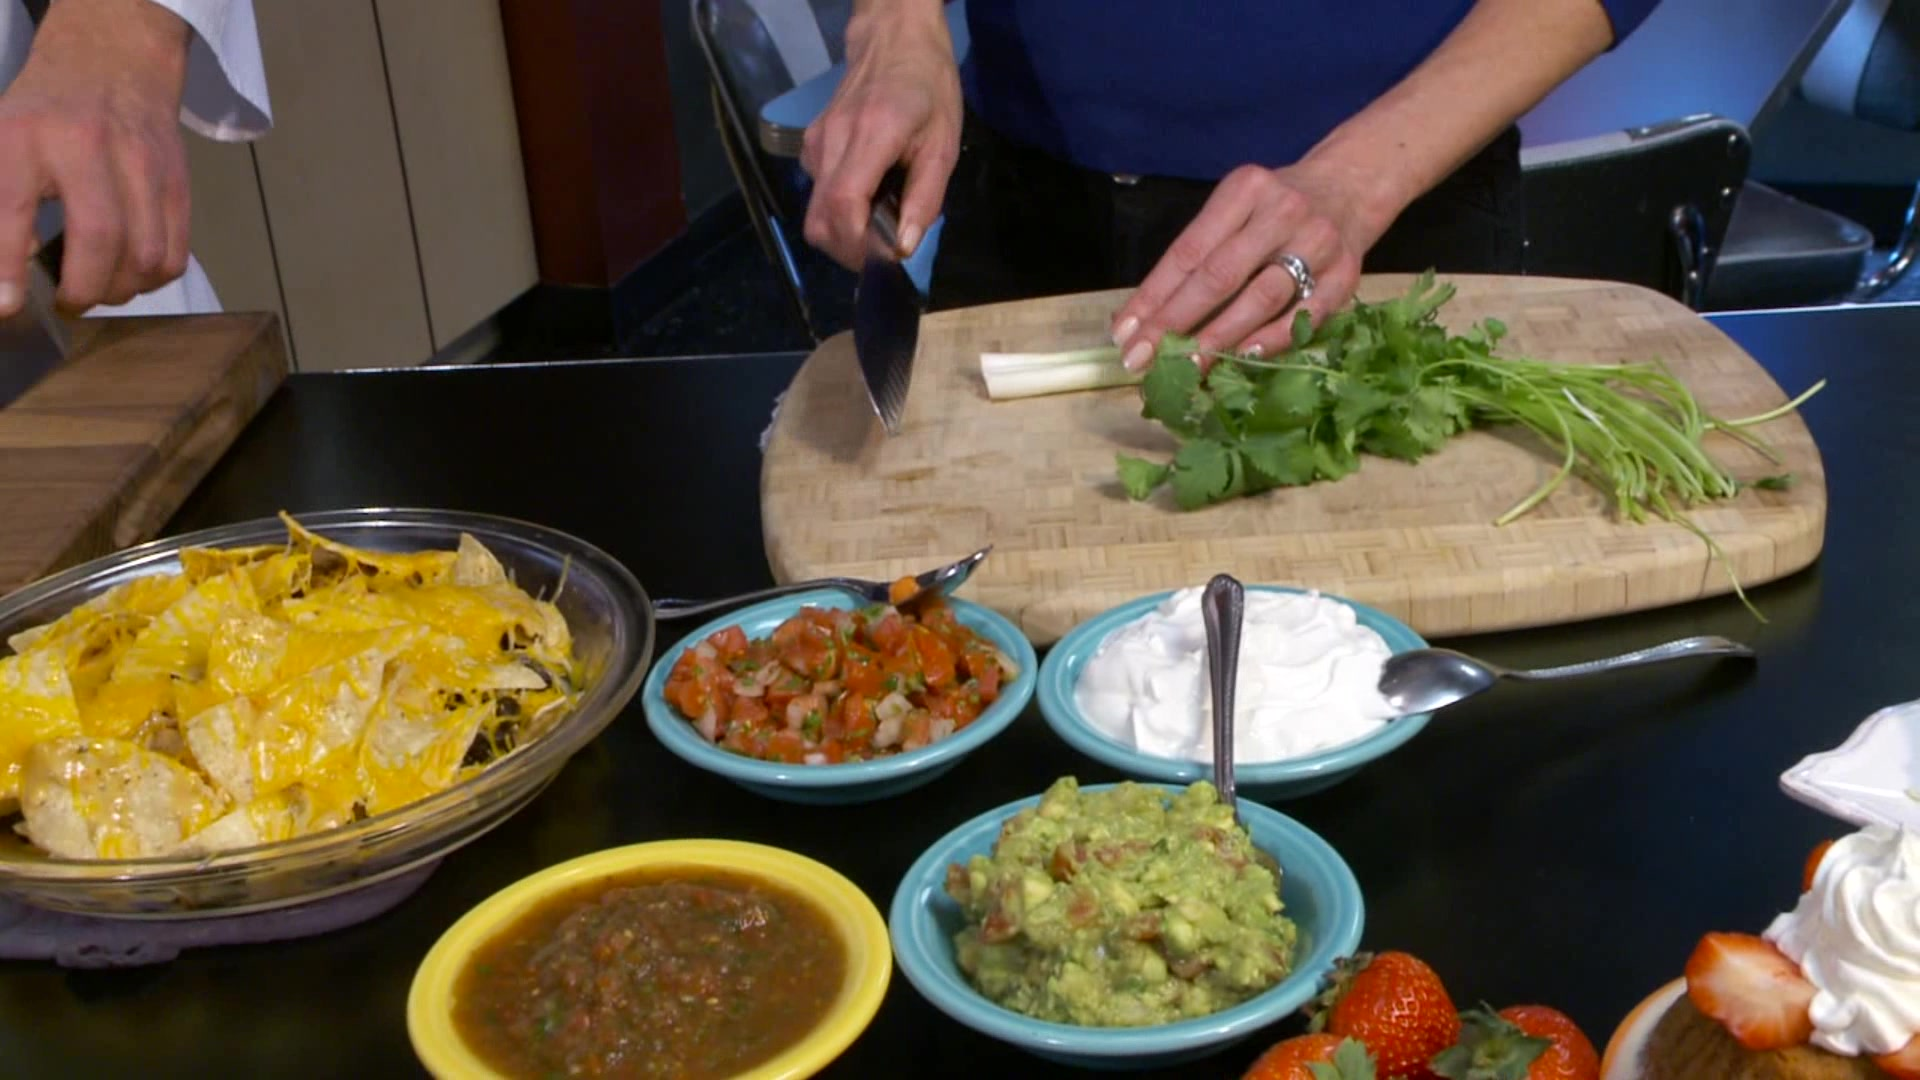 How To Make Delicious Pork Nachos